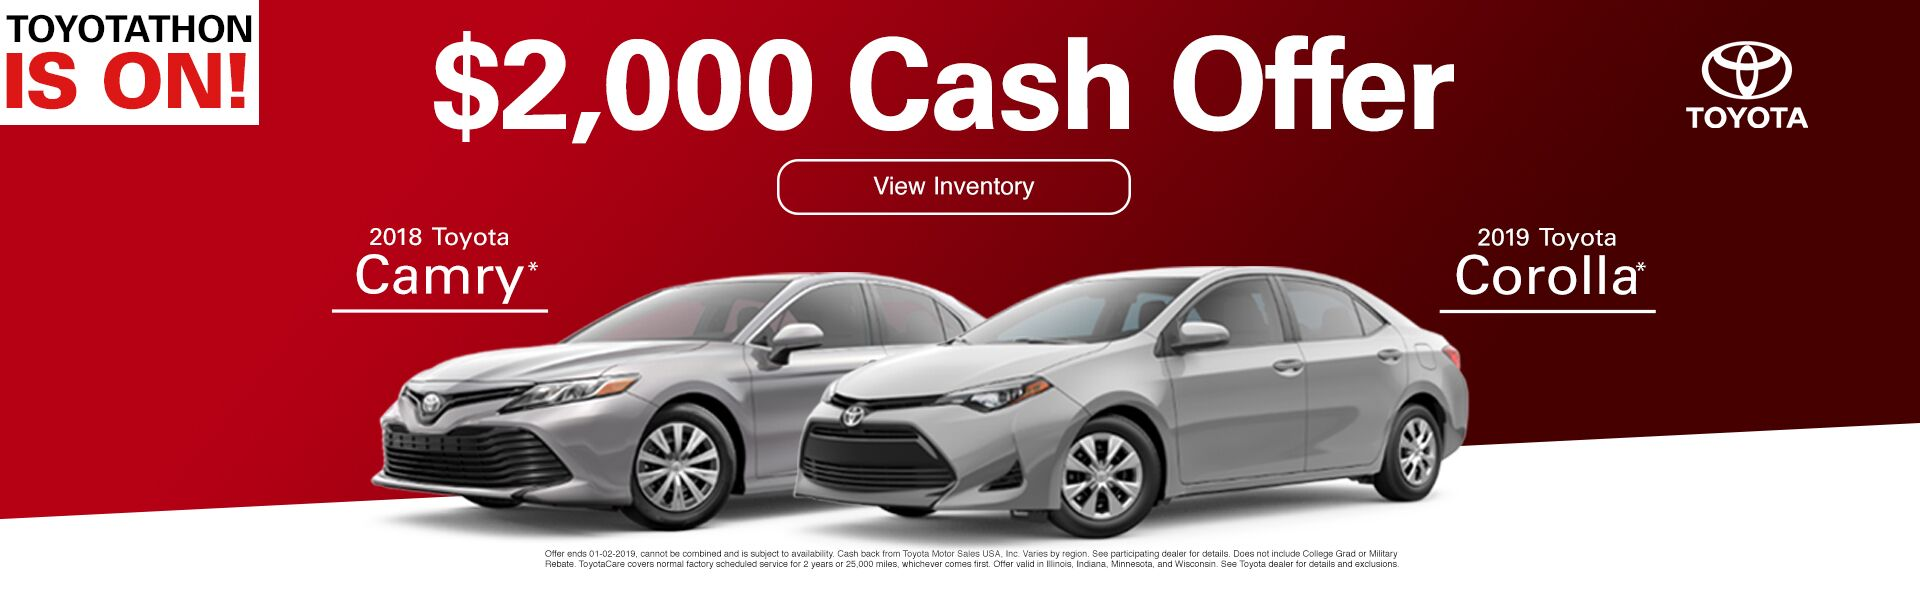 hight resolution of 2000 rebate 2018 camry and 2019 corolla